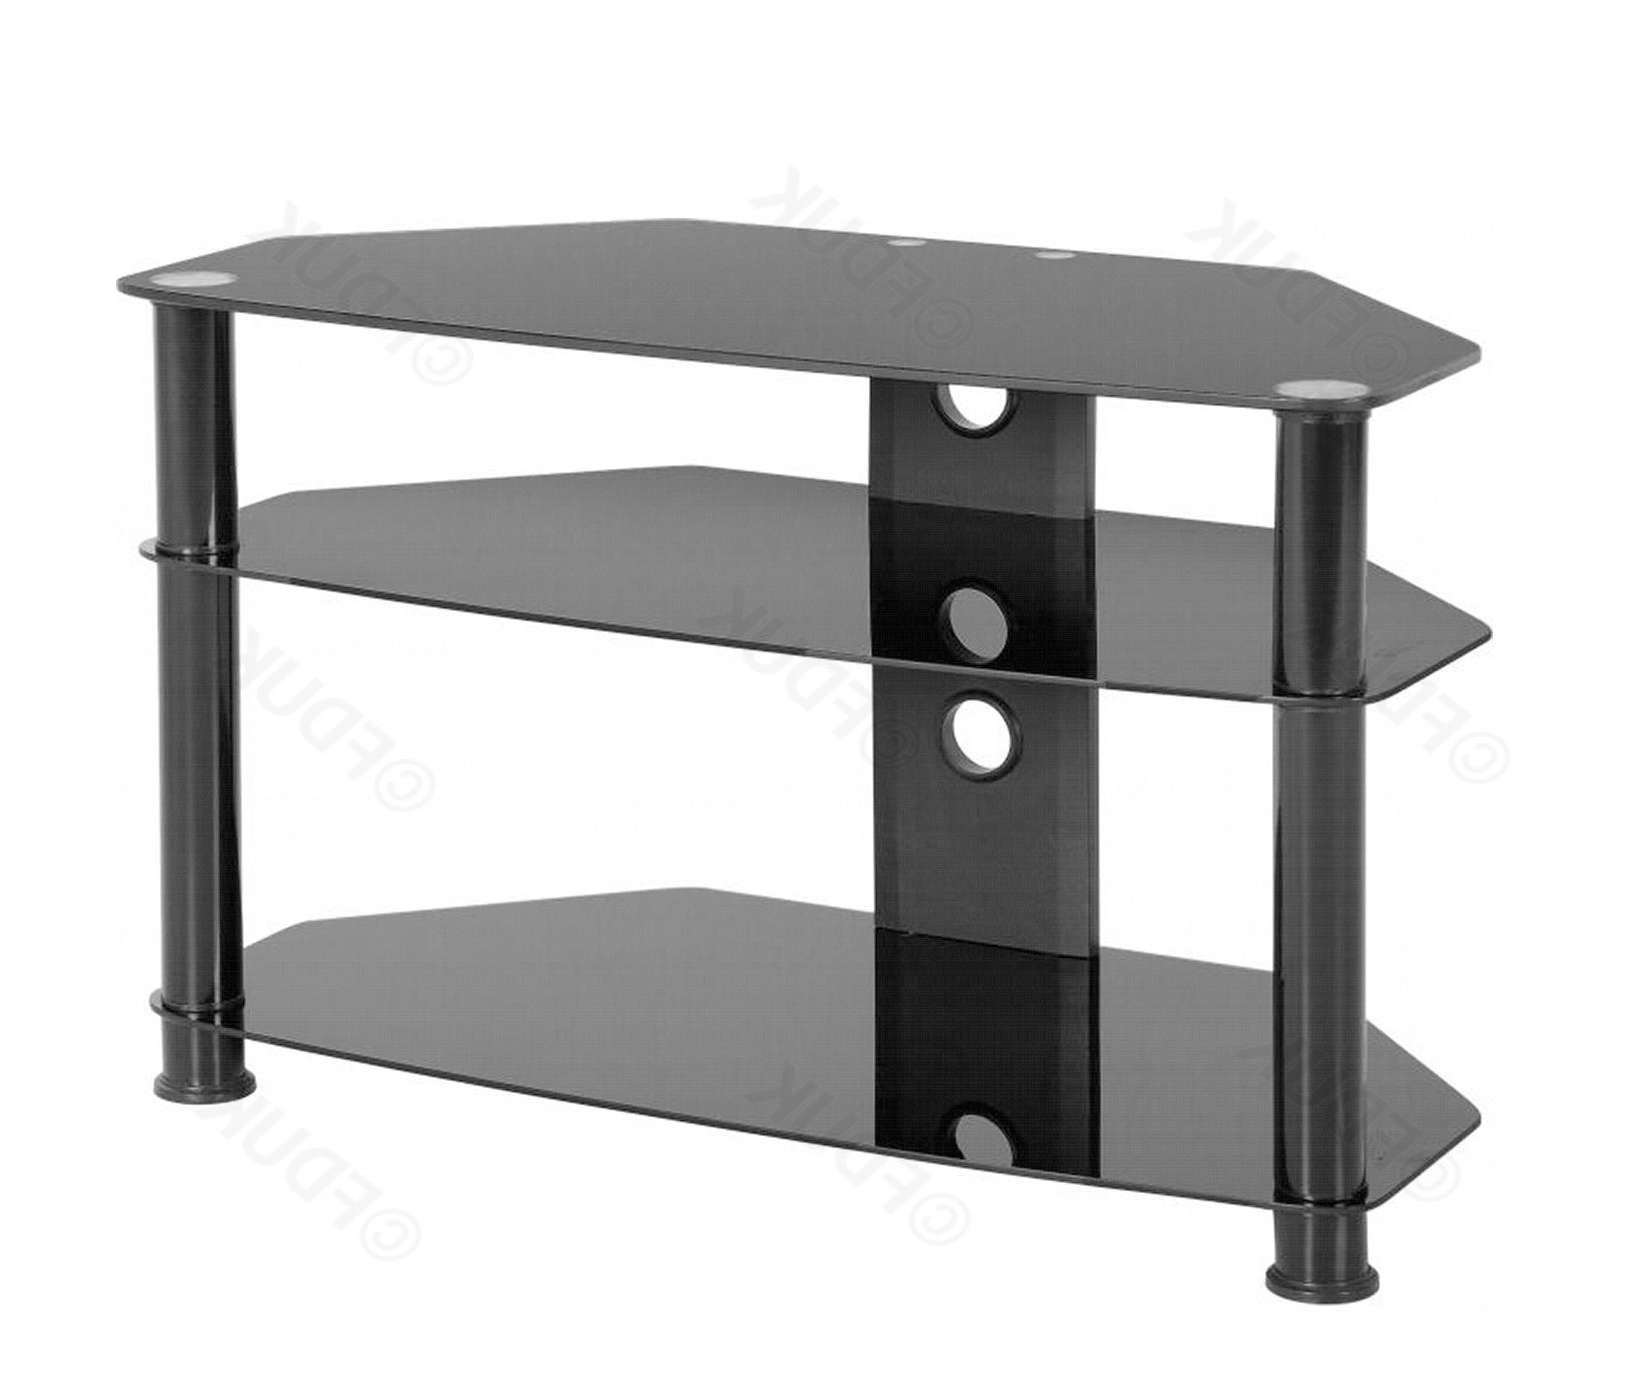 Seconique | Berlin Black Glass Tv Stand | Furnituredirectuk Pertaining To Black Glass Tv Stands (View 12 of 15)